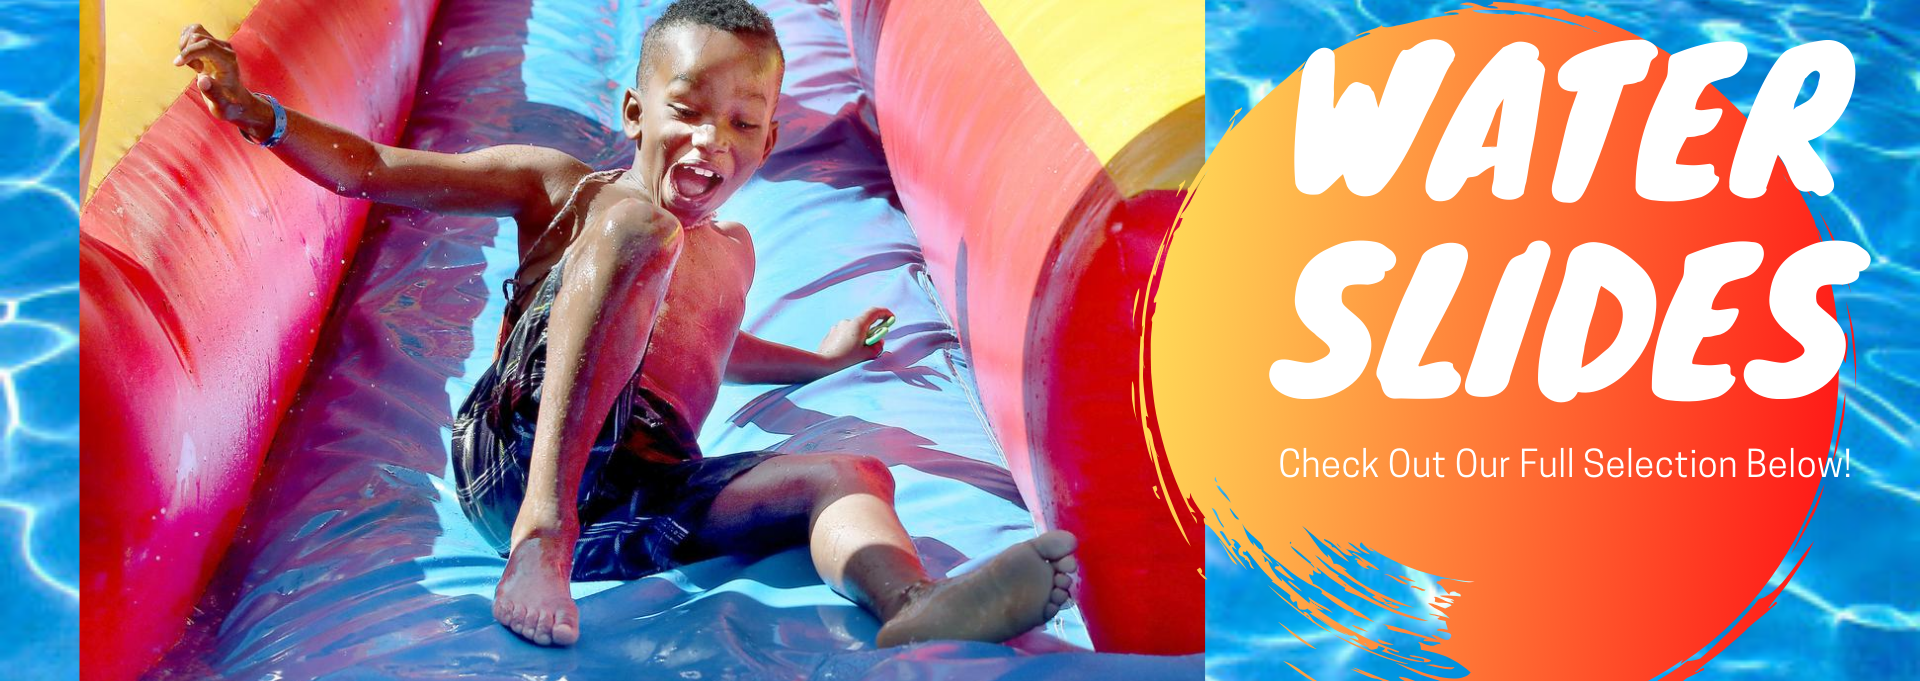 check out our huge waterslide selection for children of all ages